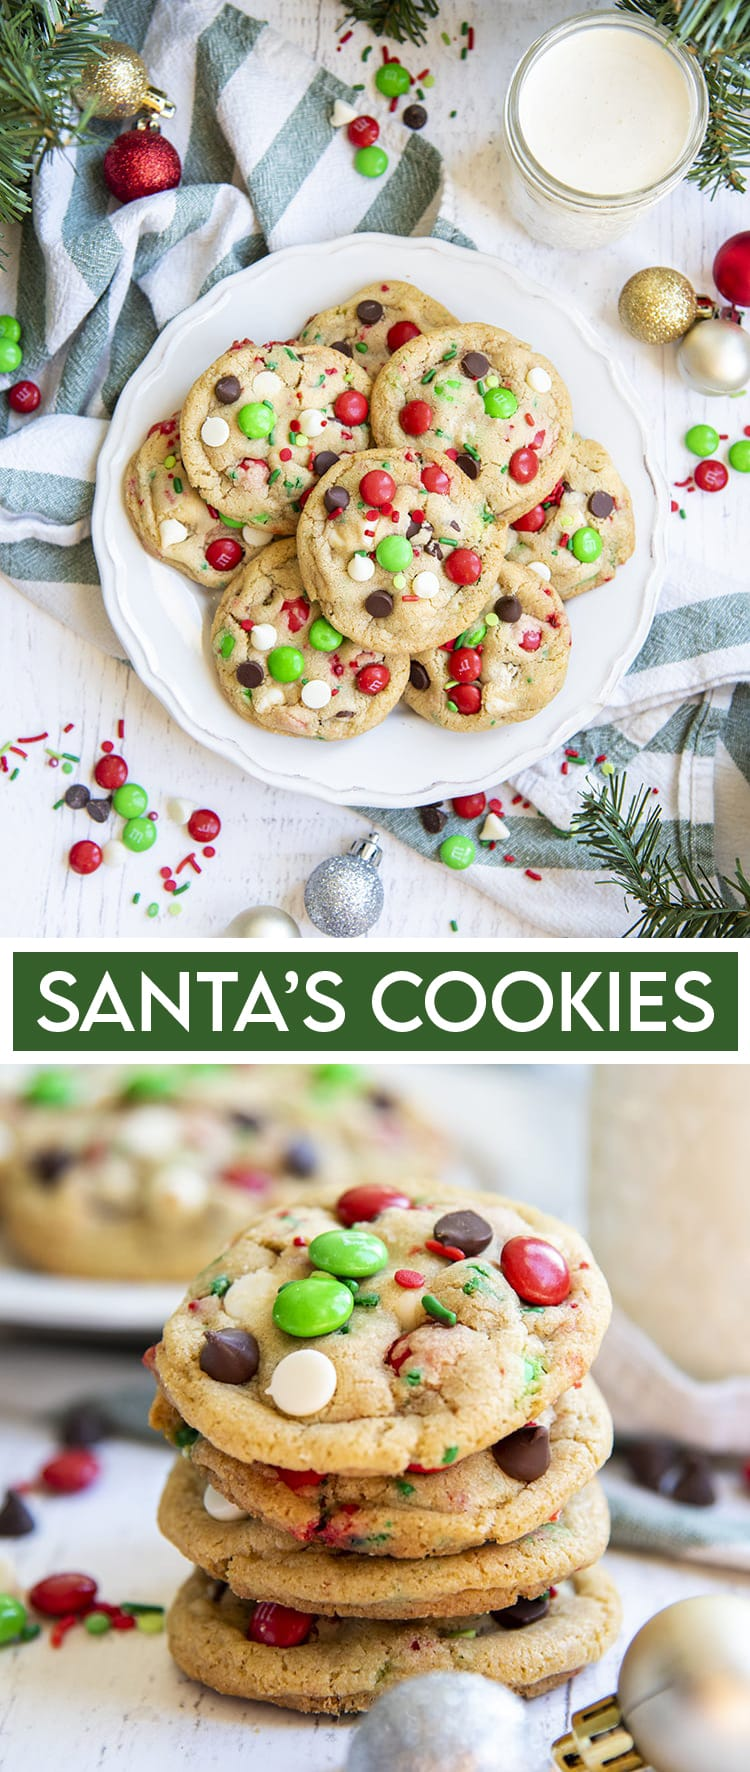 Two photos of Christmas Cookies. The first is a plate of cookies for santa, with white chocolate chips, chocolate chips, and red and green m&ms. The second is a stack of the cookies.